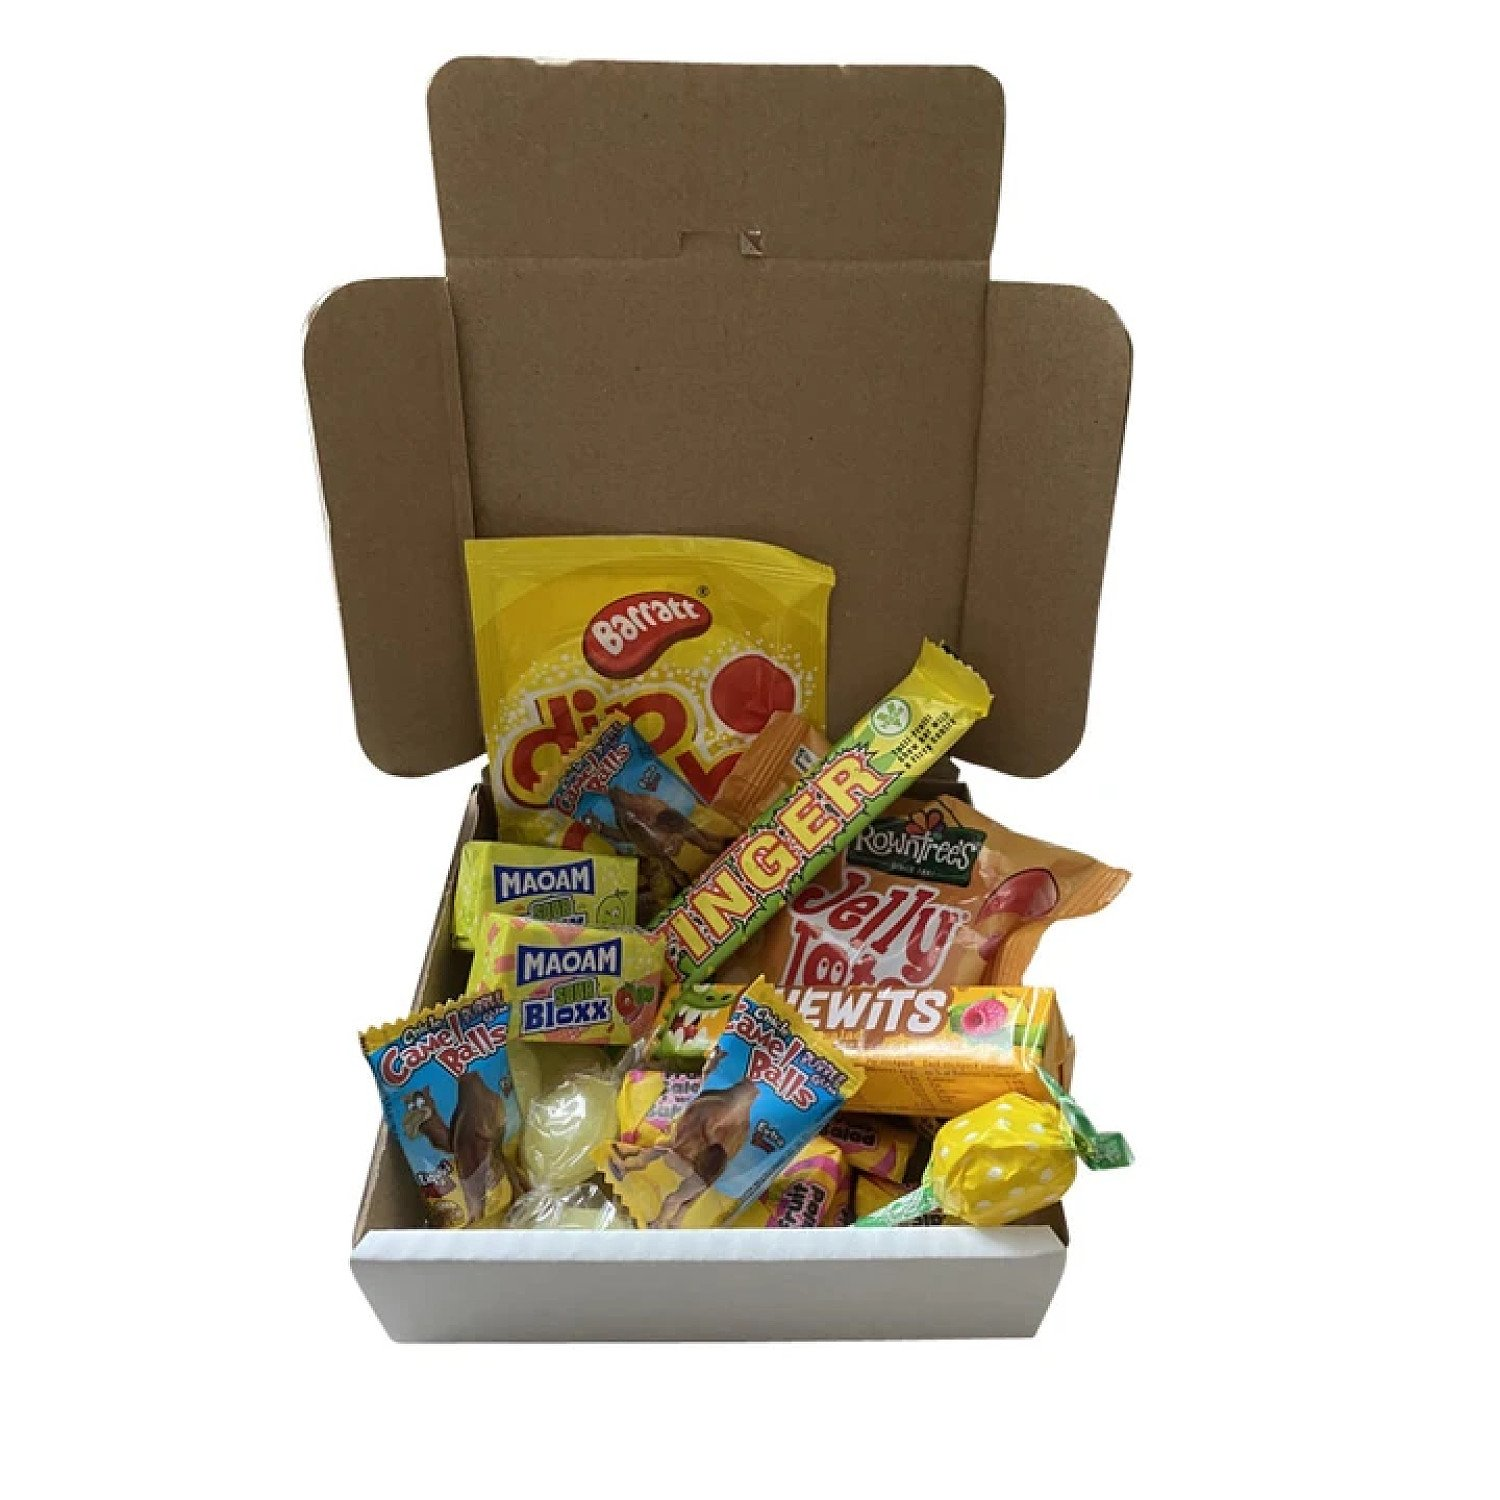 Shades of Yellow 5 inch Pizza Box Sweets Selection Free Postage